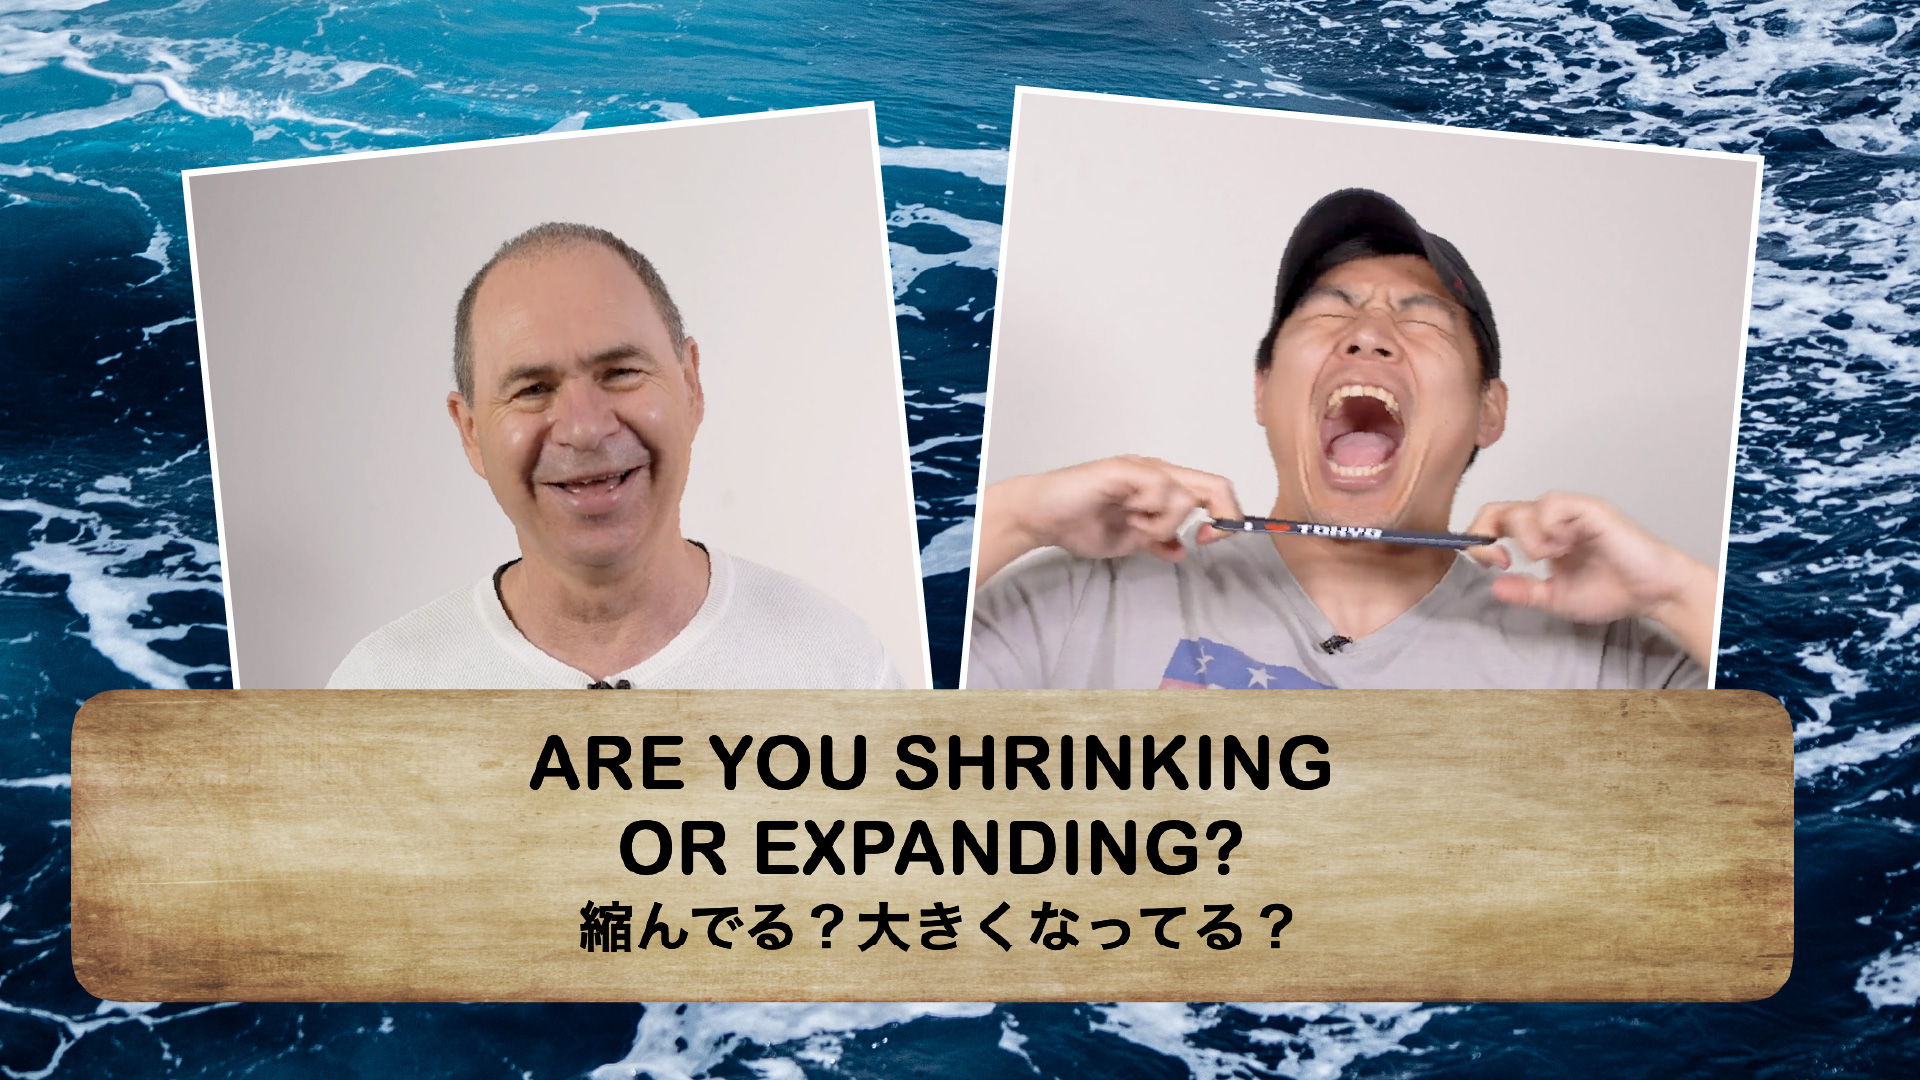 Are You Shrinking Or Expanding?